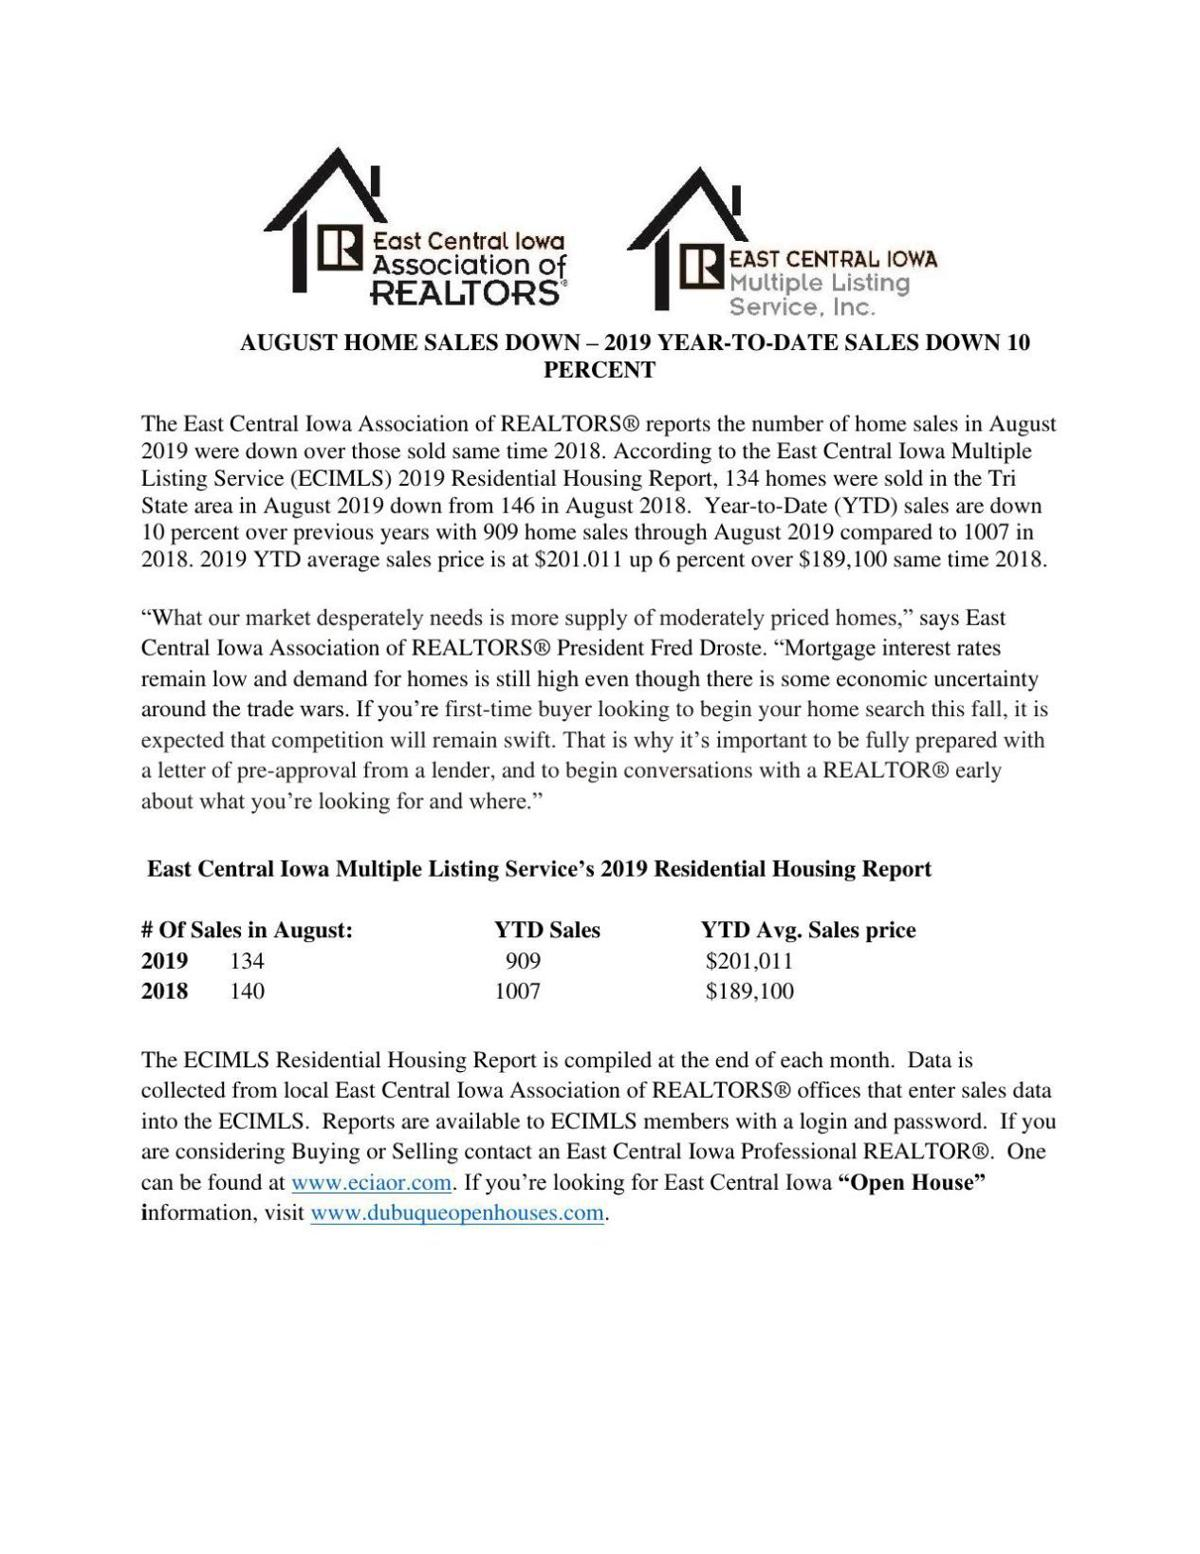 August home sales report